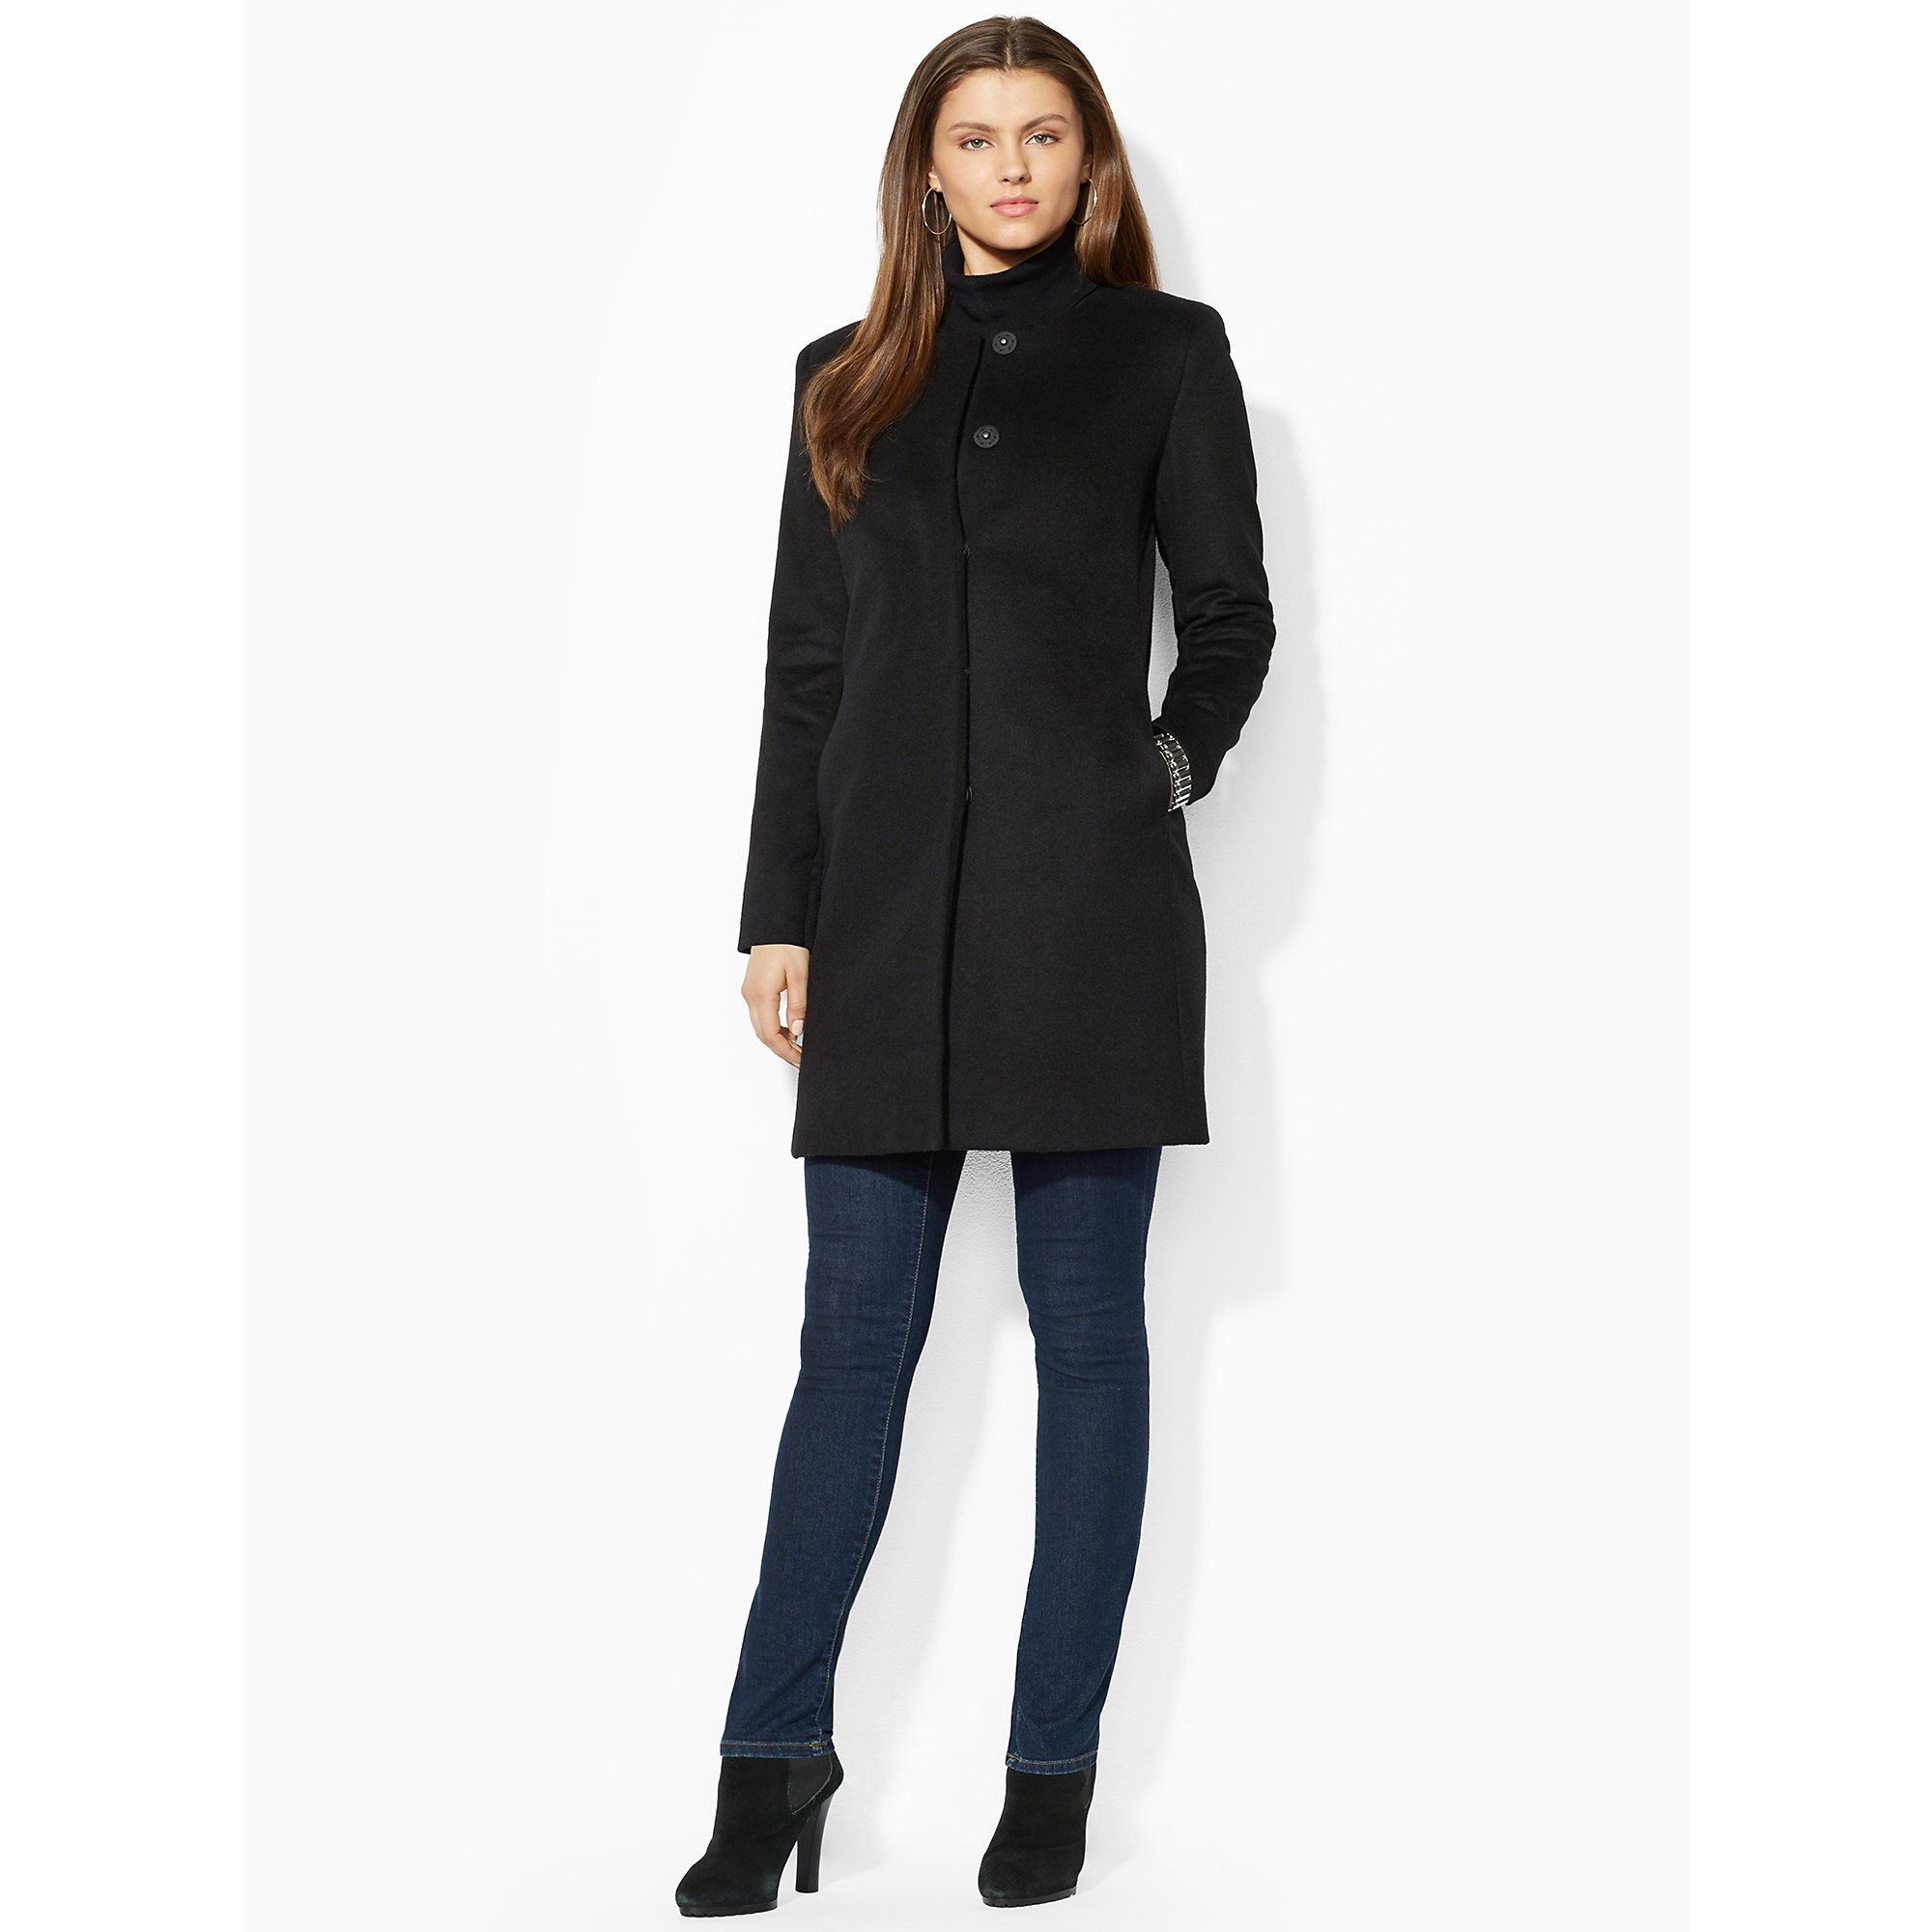 Ralph lauren Wool-blend Collarless Coat in Black | Lyst